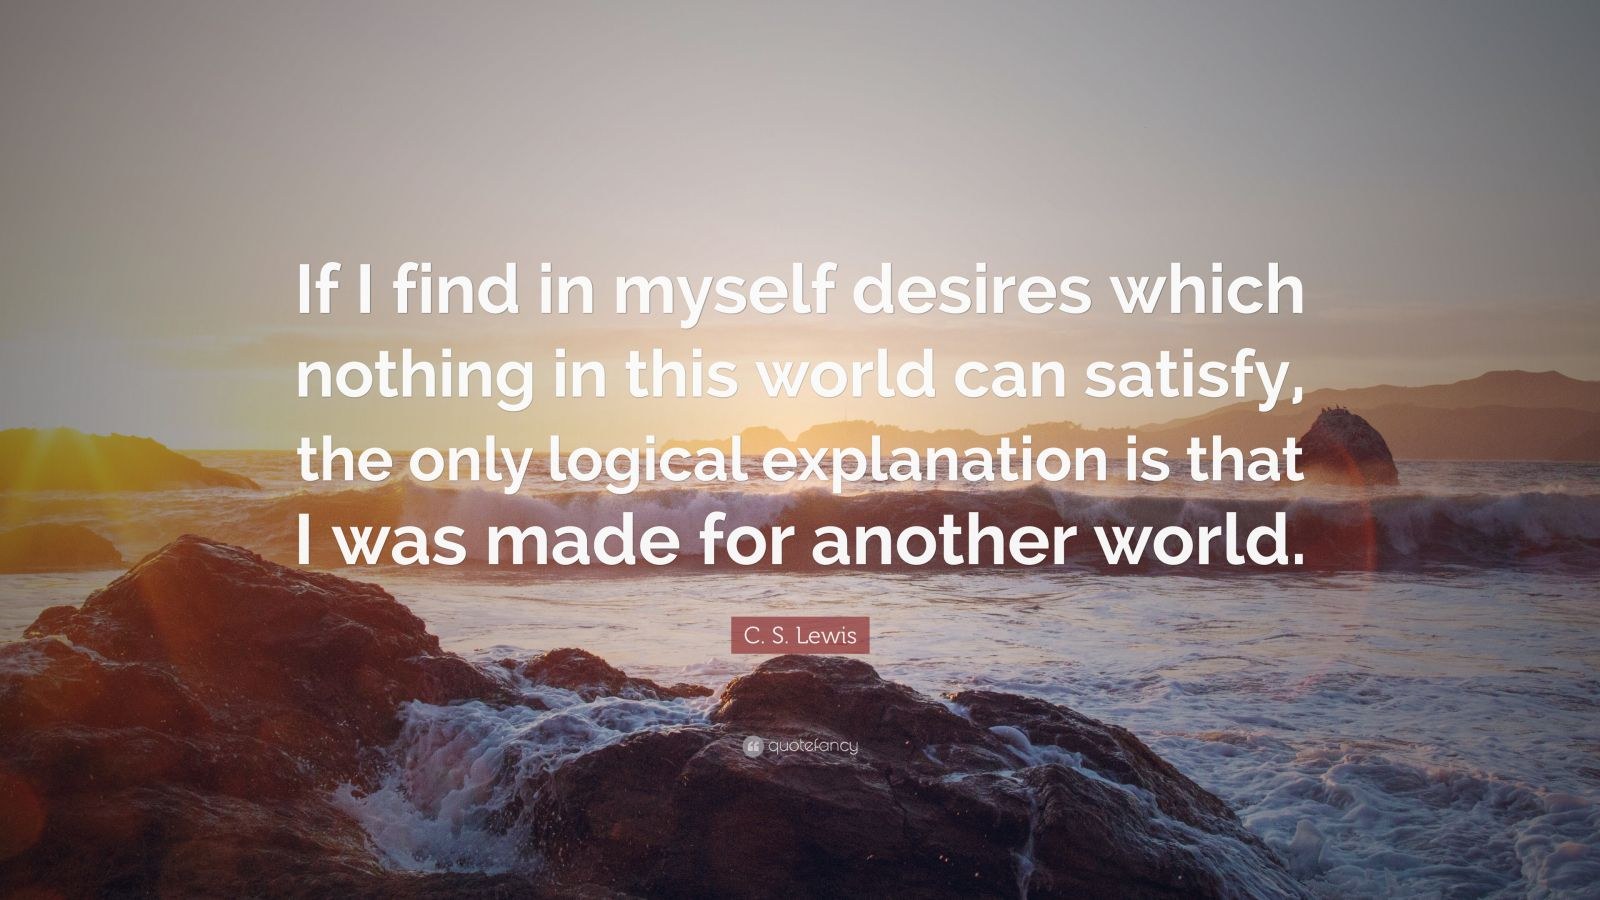 I Love Myself Quotes Wallpapers C S Lewis Quote If I Find In Myself Desires Which